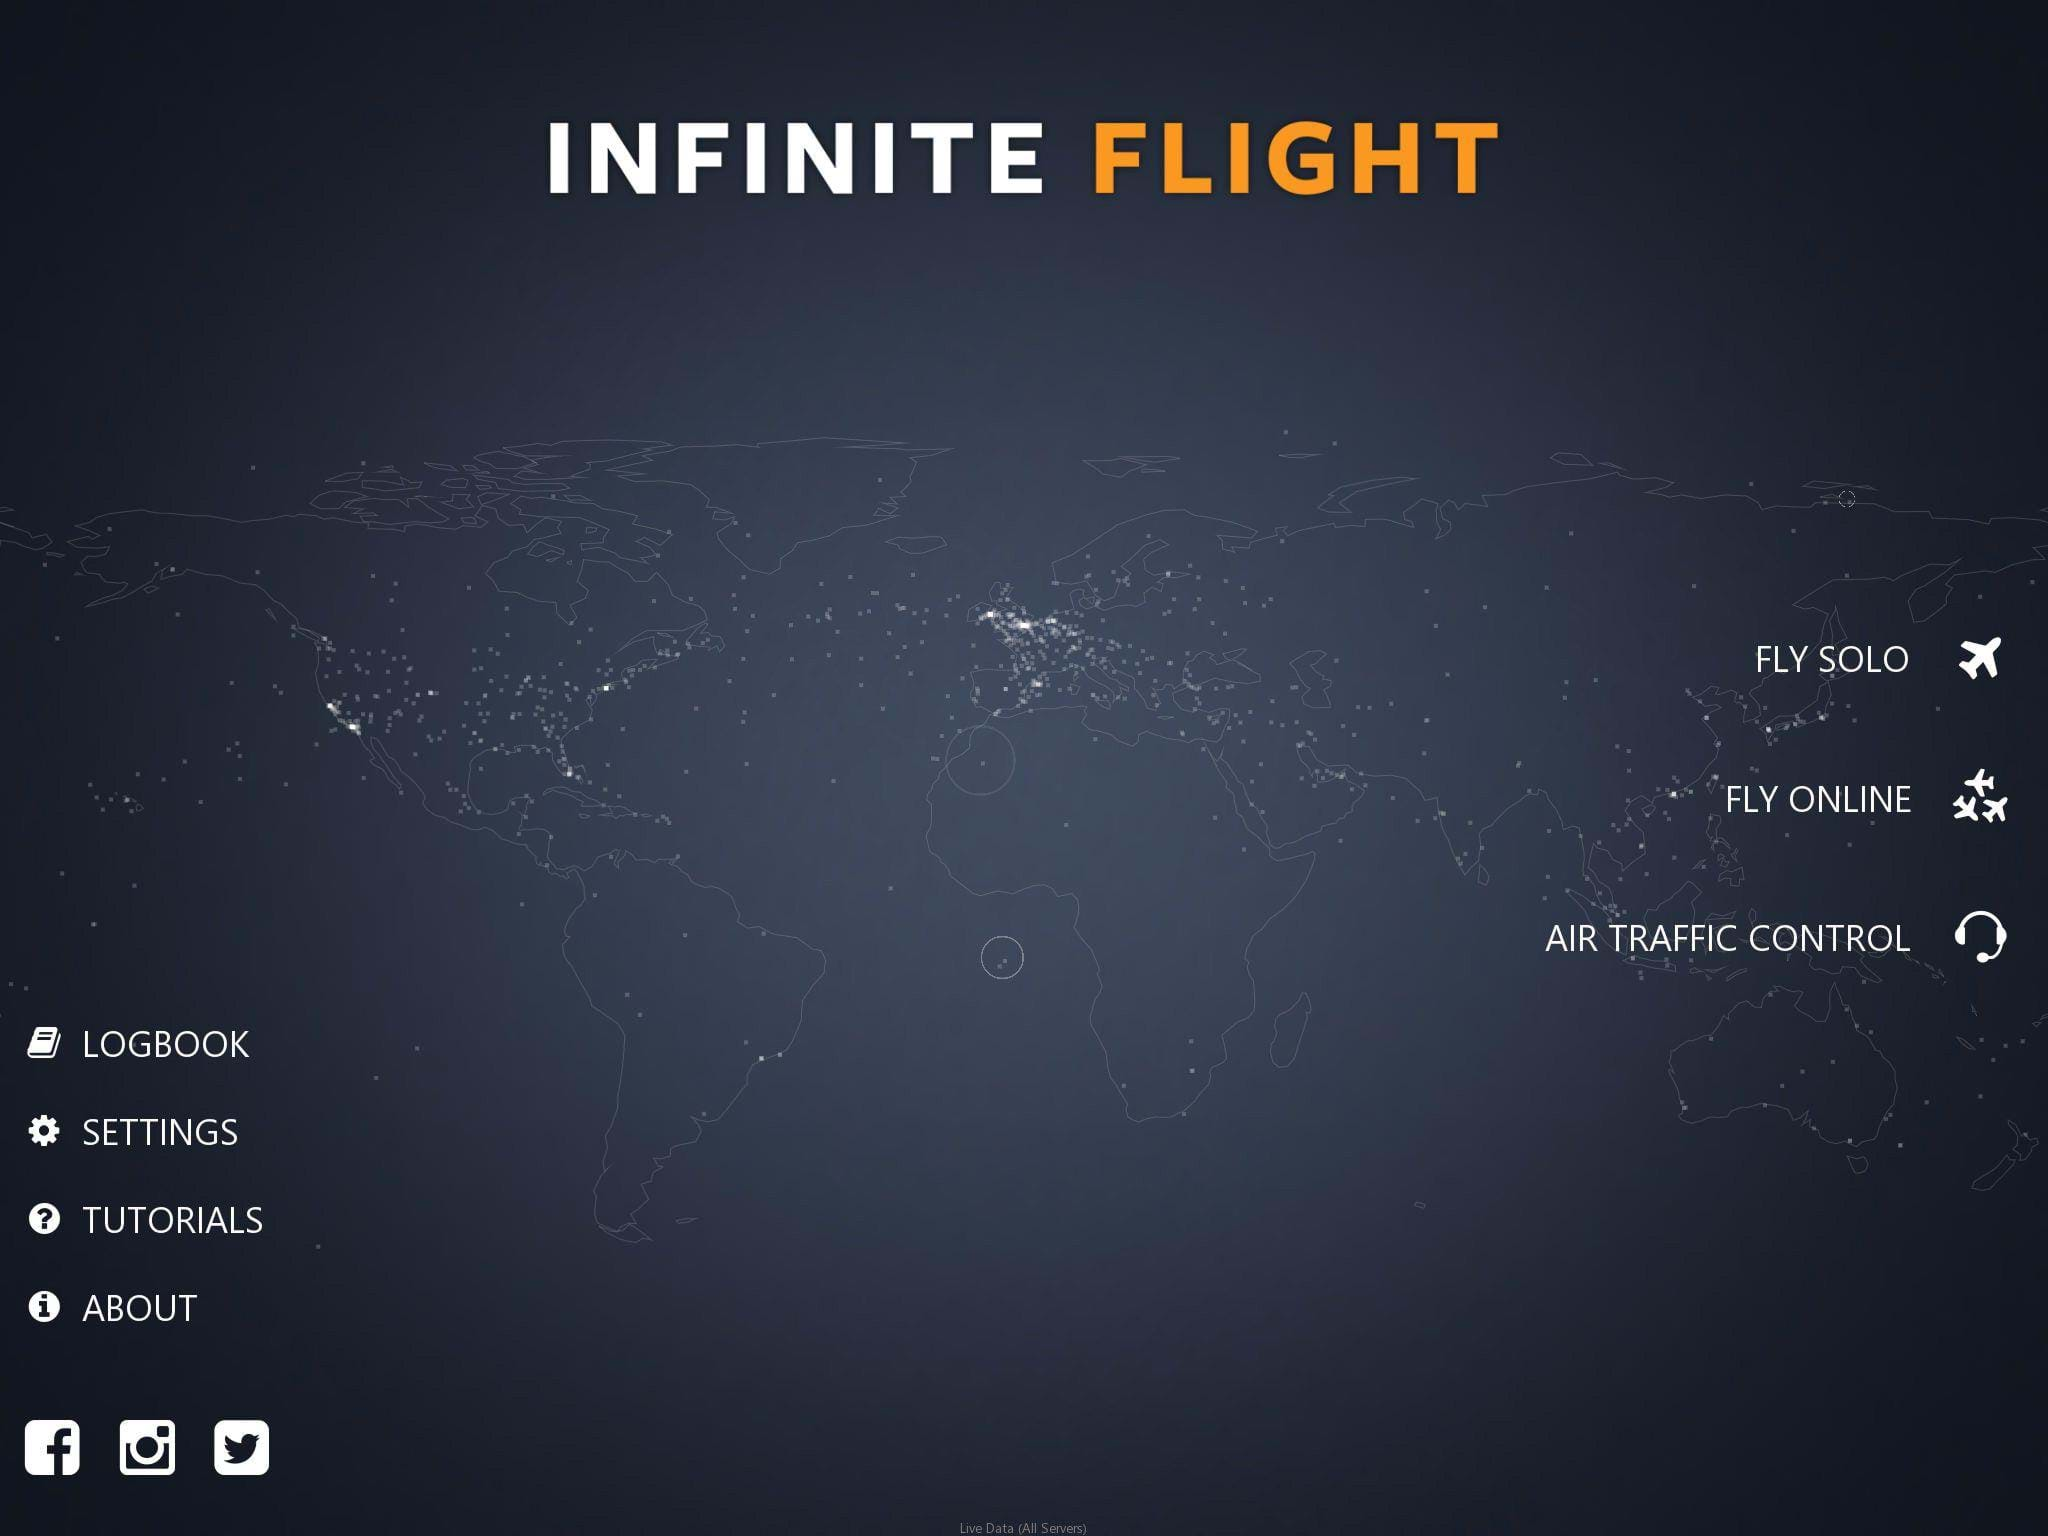 Mobile simming: will Infinite Flight have helicopters in a near